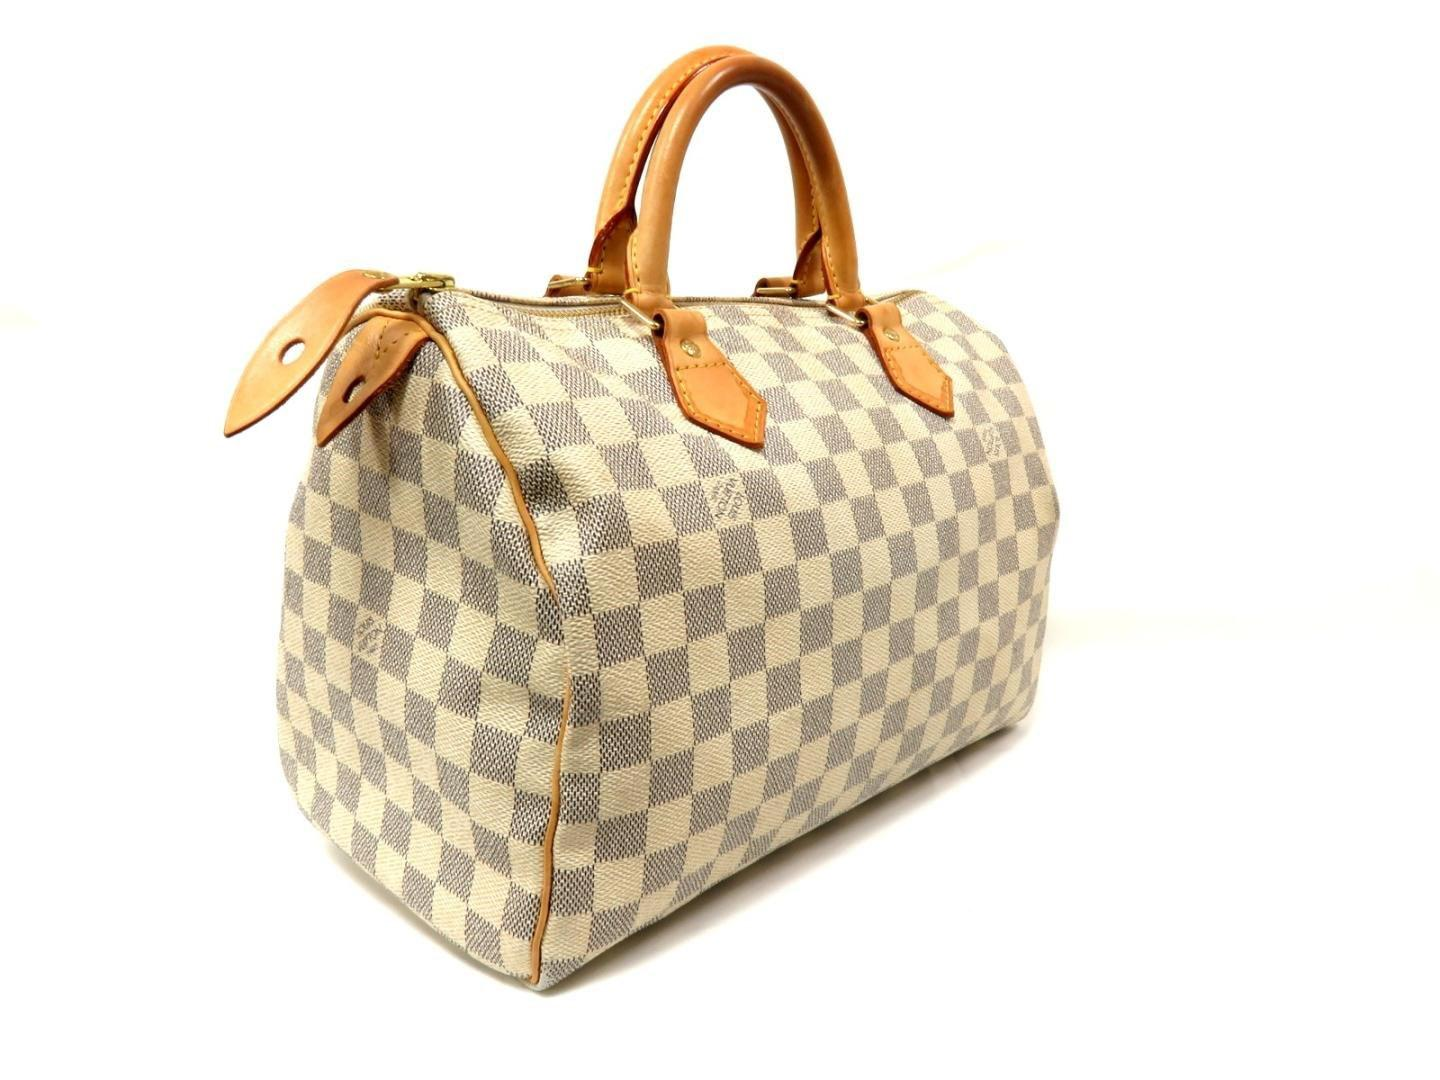 e6bf68ea1cd8 Lyst - Louis Vuitton Speedy 30 Boston Hand Bag N 41533 Damier Azur ...